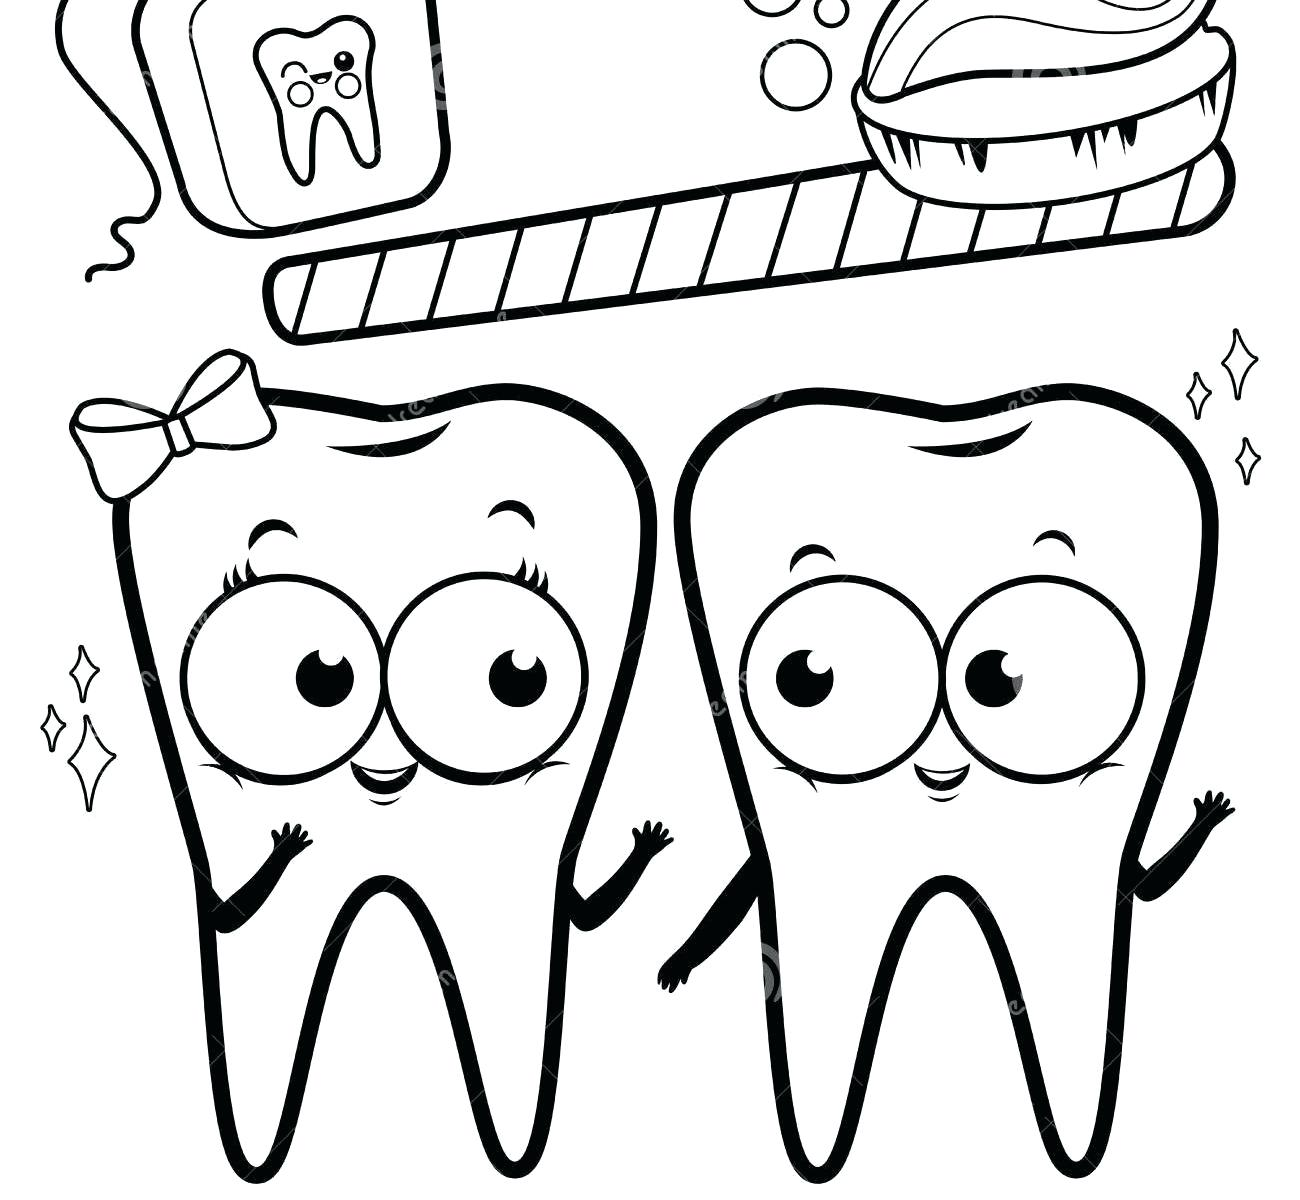 The Best Free Tooth Coloring Page Images Download From